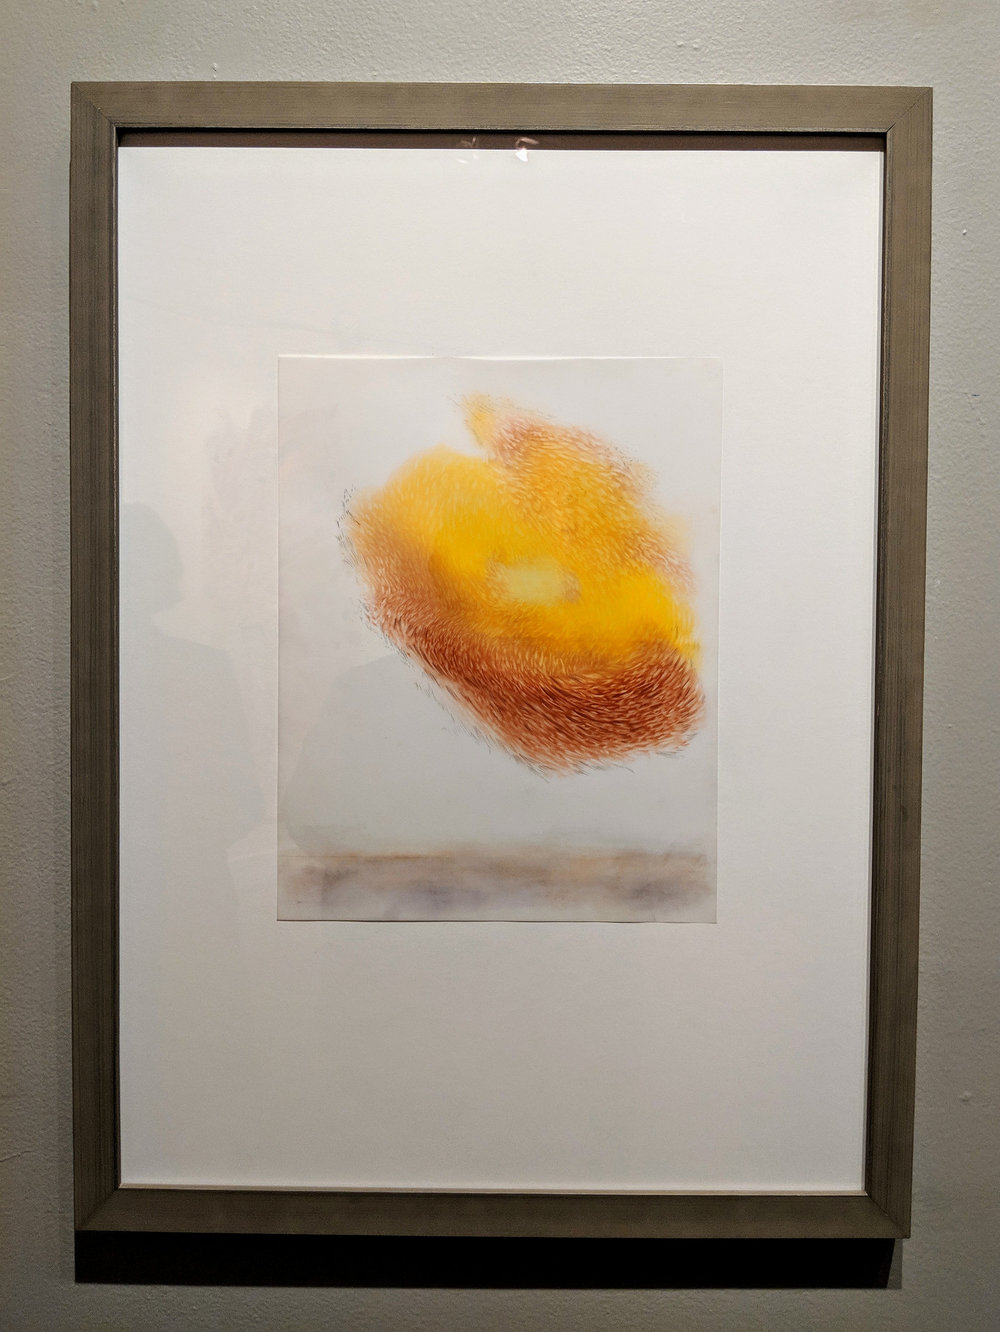 Observed and Recorded Permutation of the Holy Spirit XVIII    Medium  graphite/pastel on duralar with wood frame   Size  28 3/8 x 20 7/8 in.   Price $800